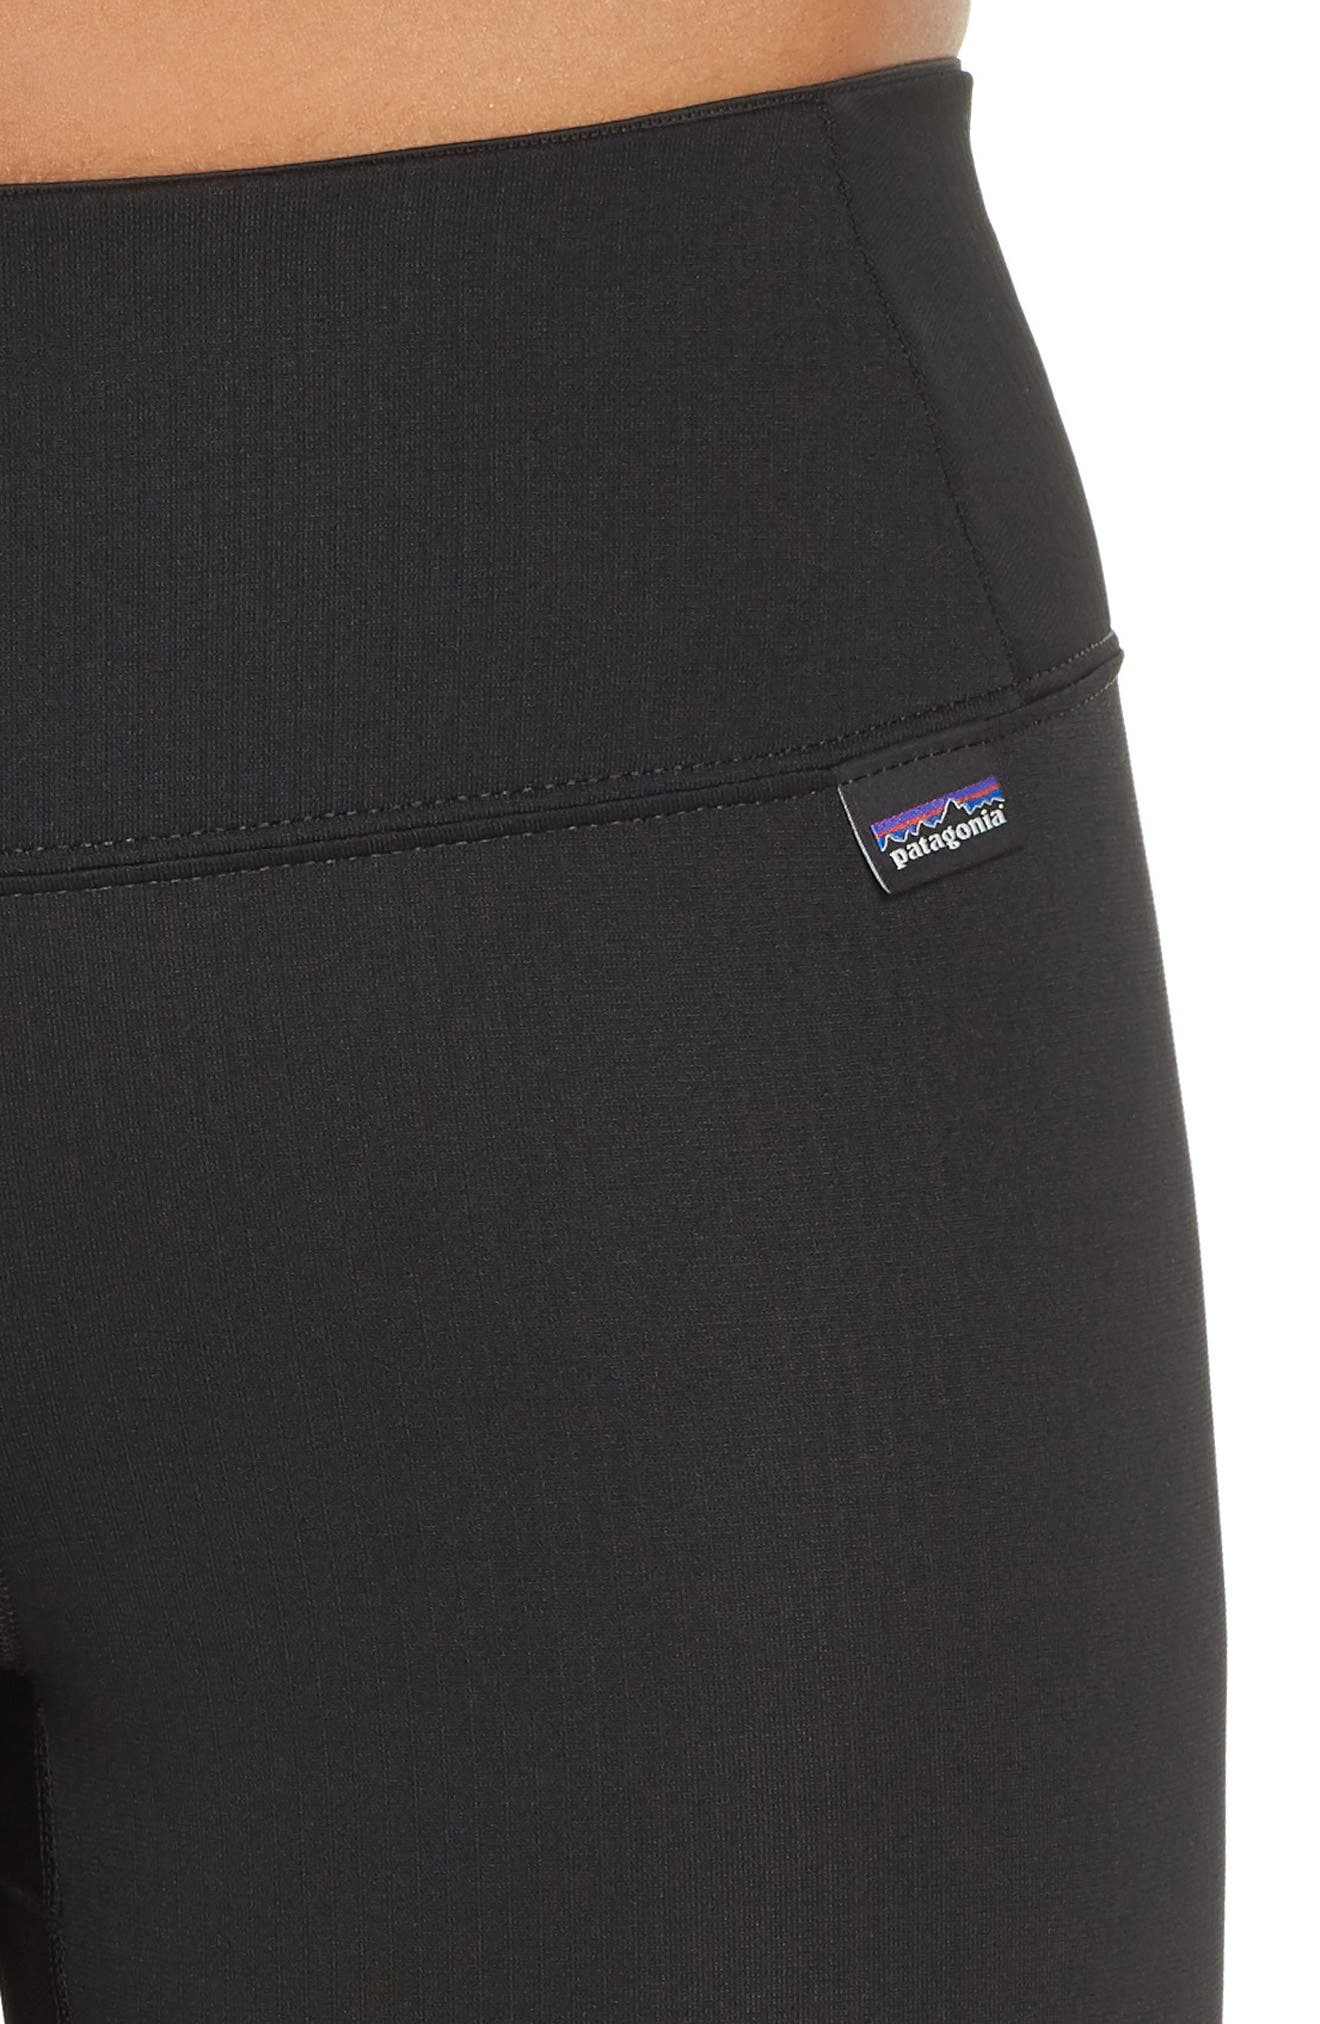 PATAGONIA, Capilene Midweight Base Layer Tights, Alternate thumbnail 5, color, BLACK